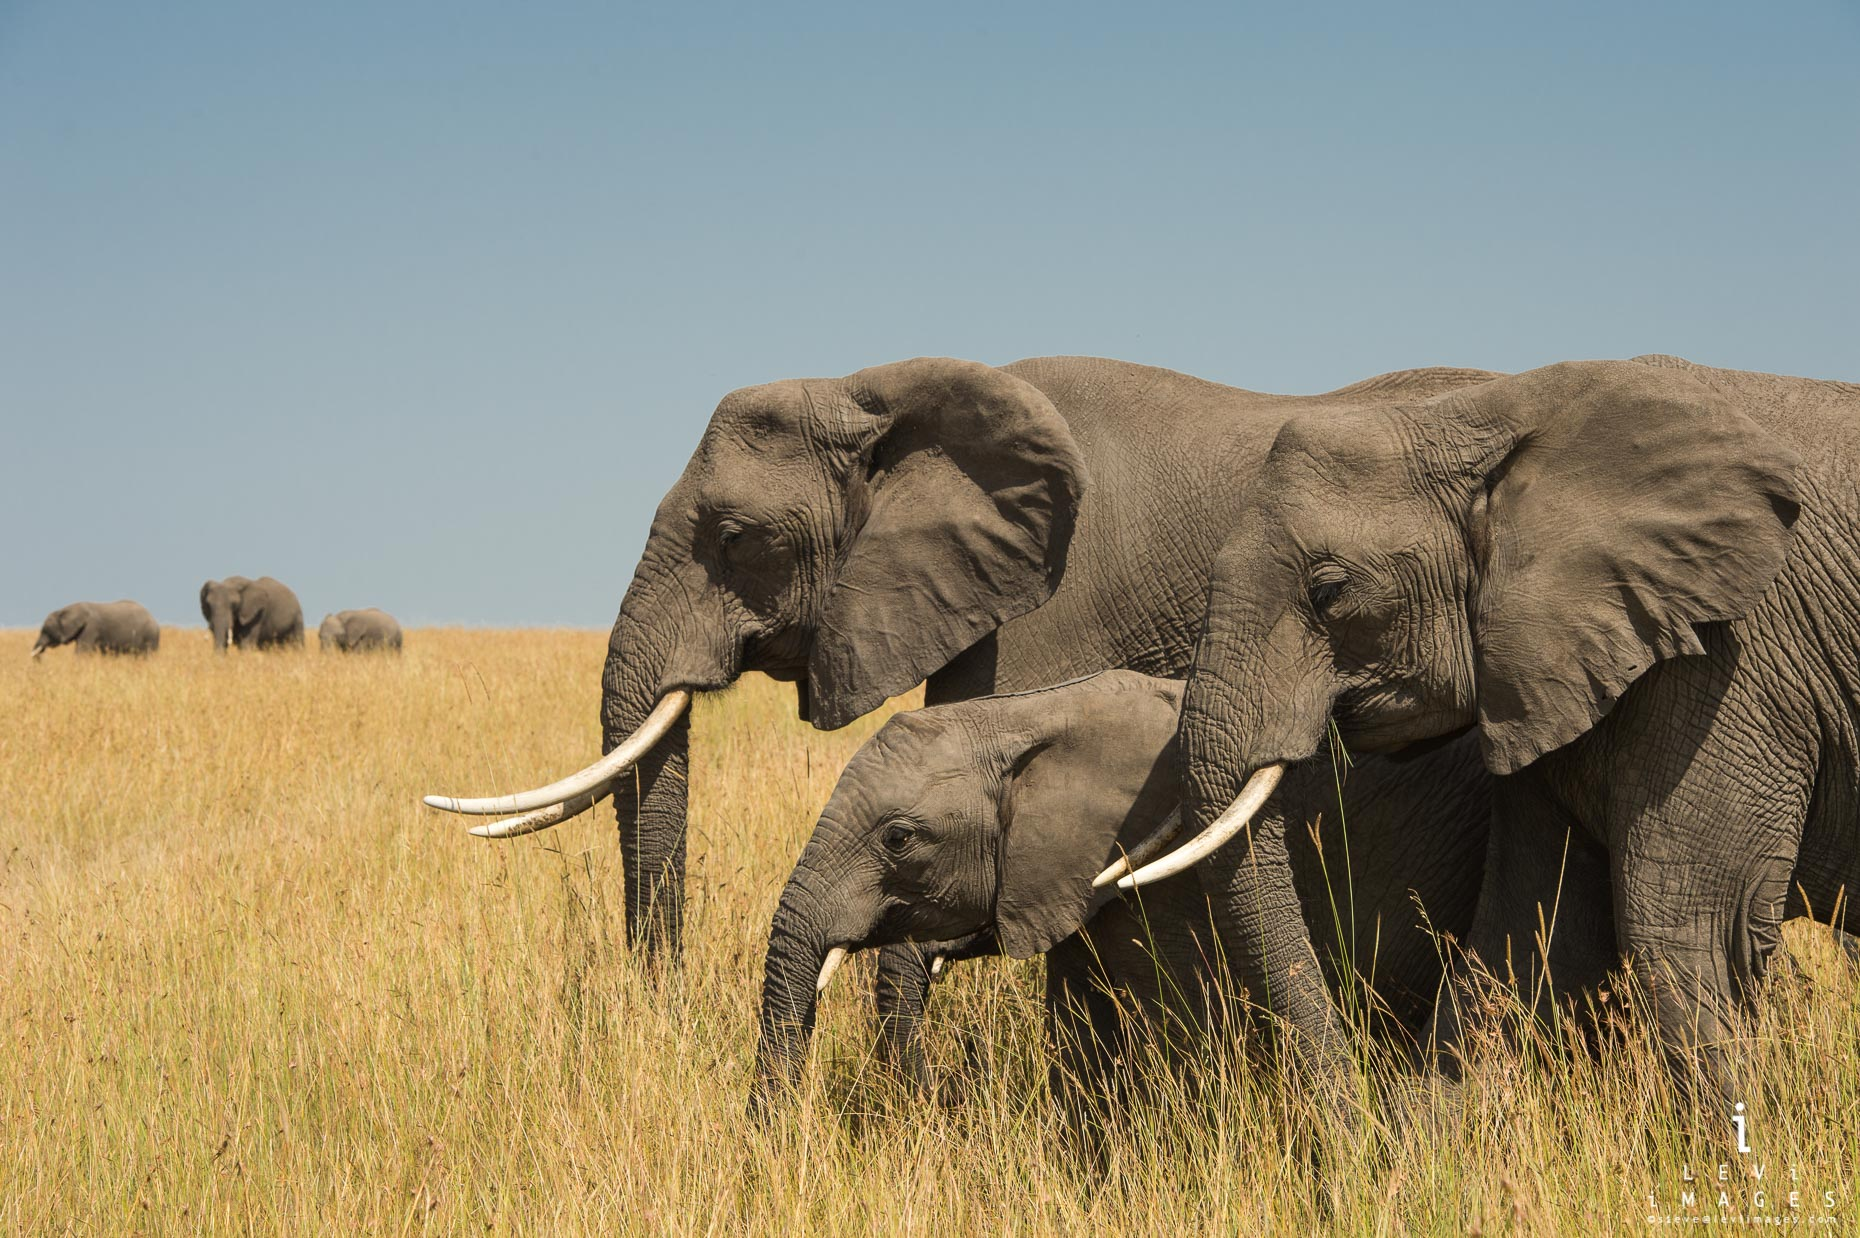 African bush Elephant (Loxodonta africana) families in the plains of Maasai Mara, Africa